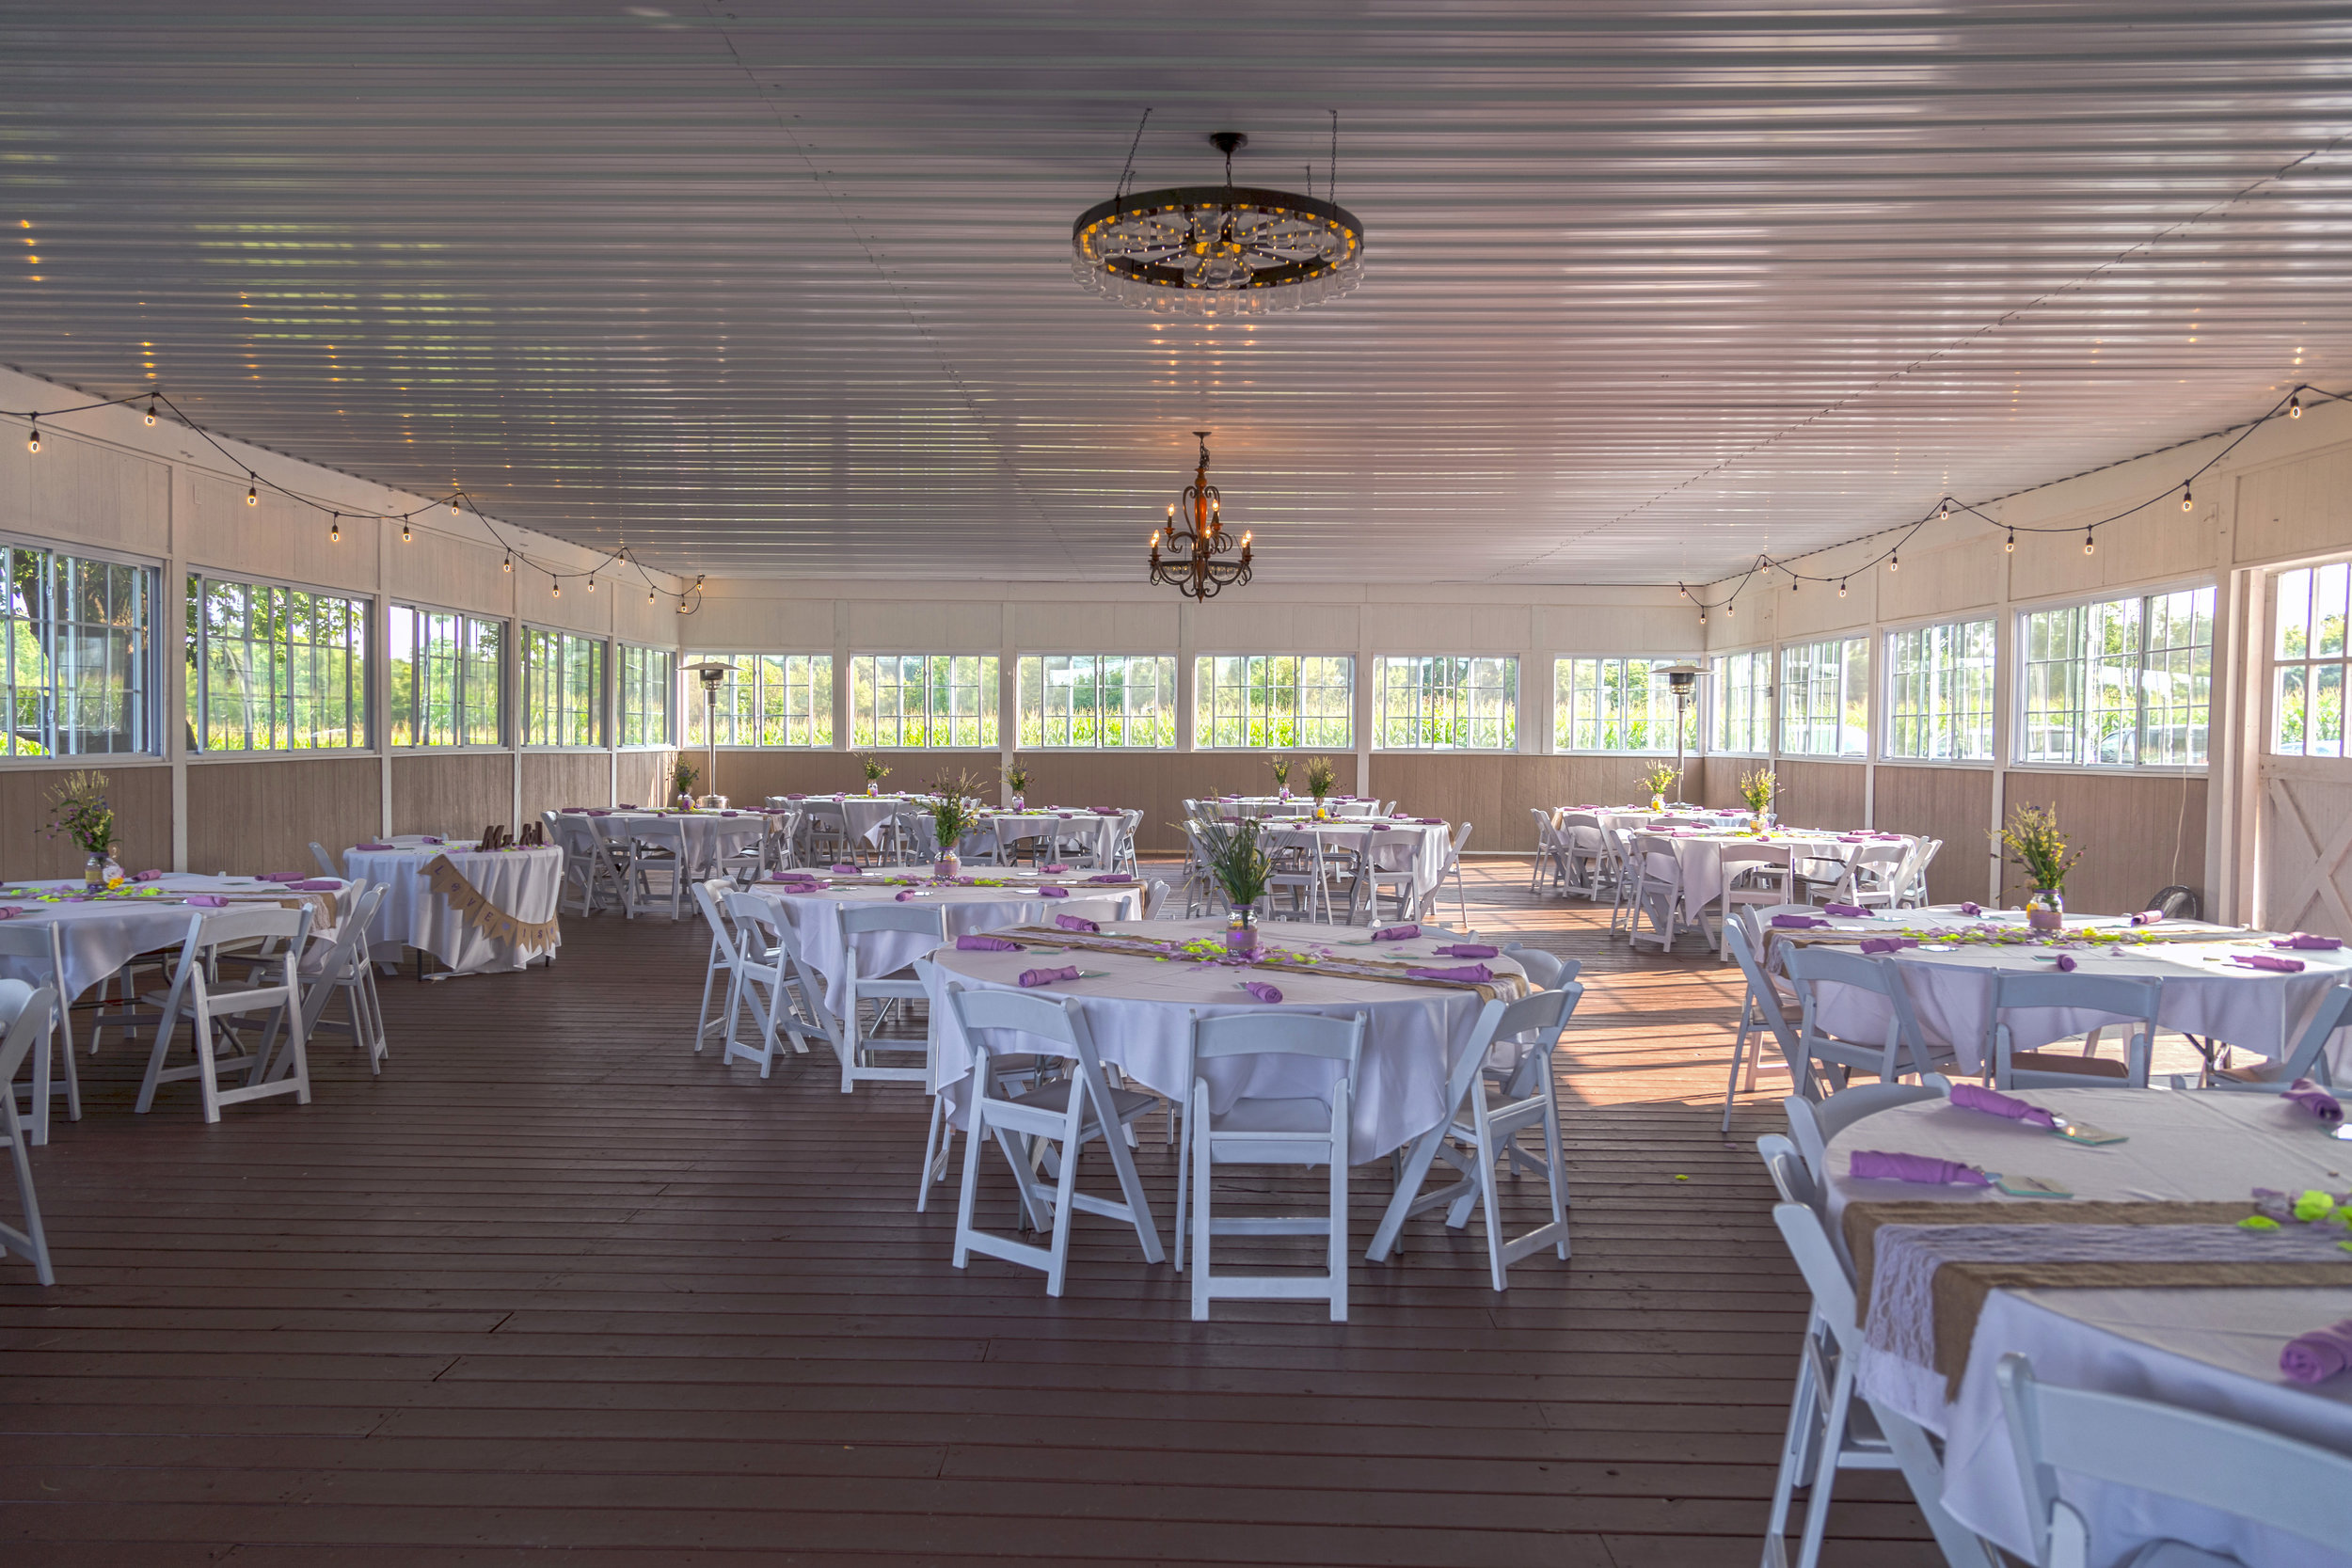 Atrium Dining Barn adjacent to Party Barn and Dance Hall